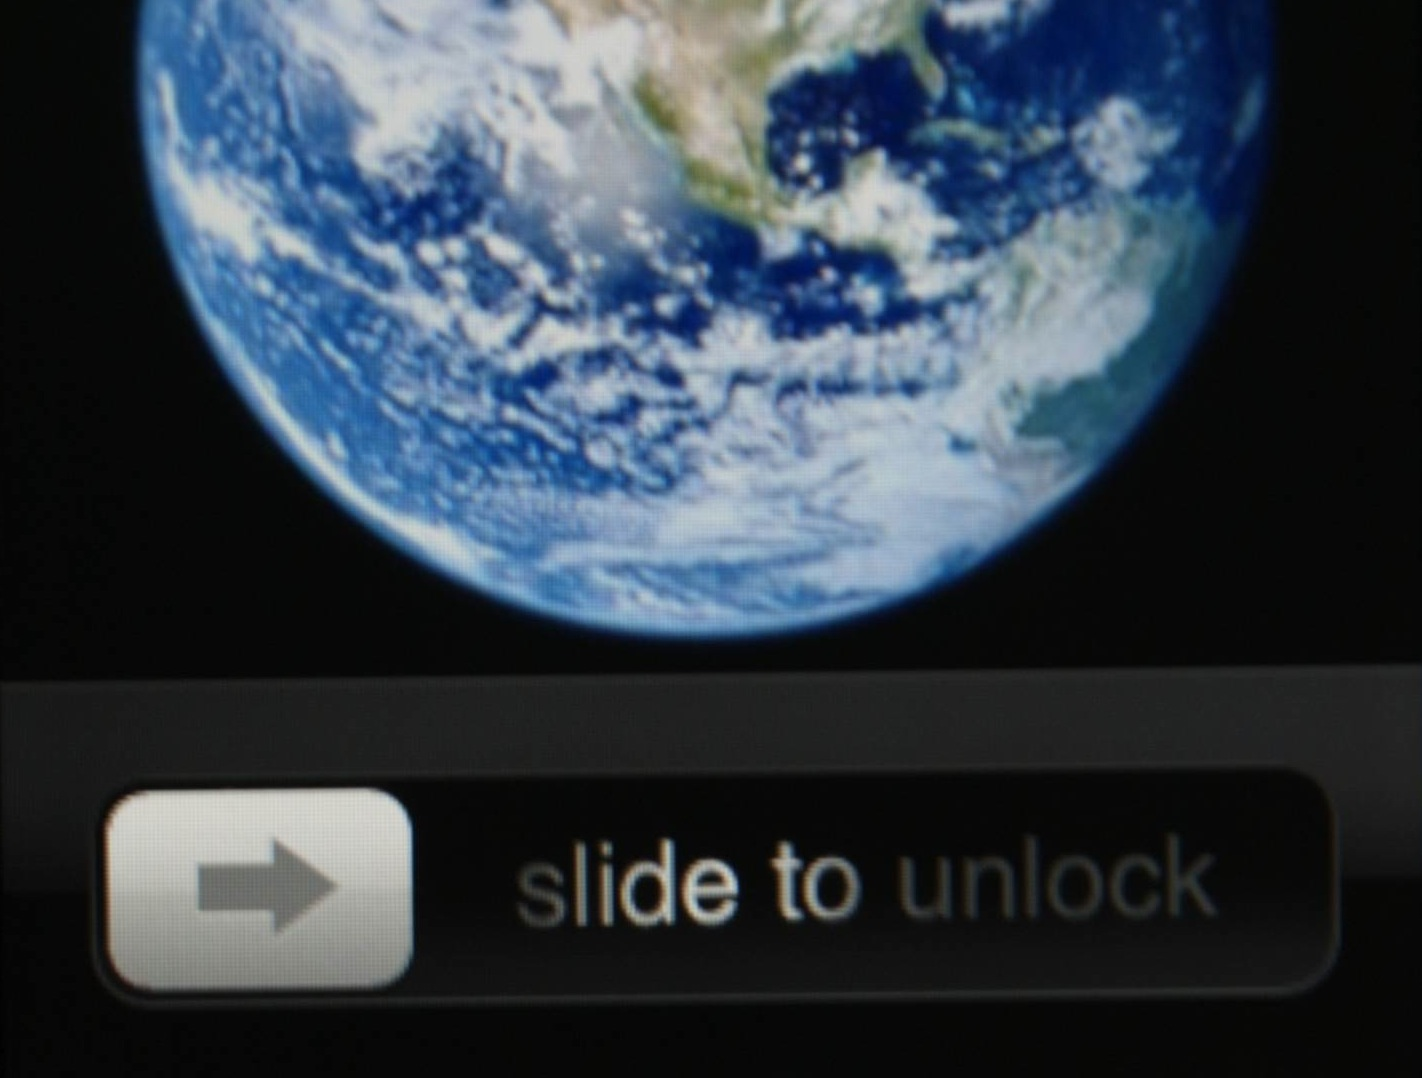 my iphone wont slide to unlock slide to unlock software 19413